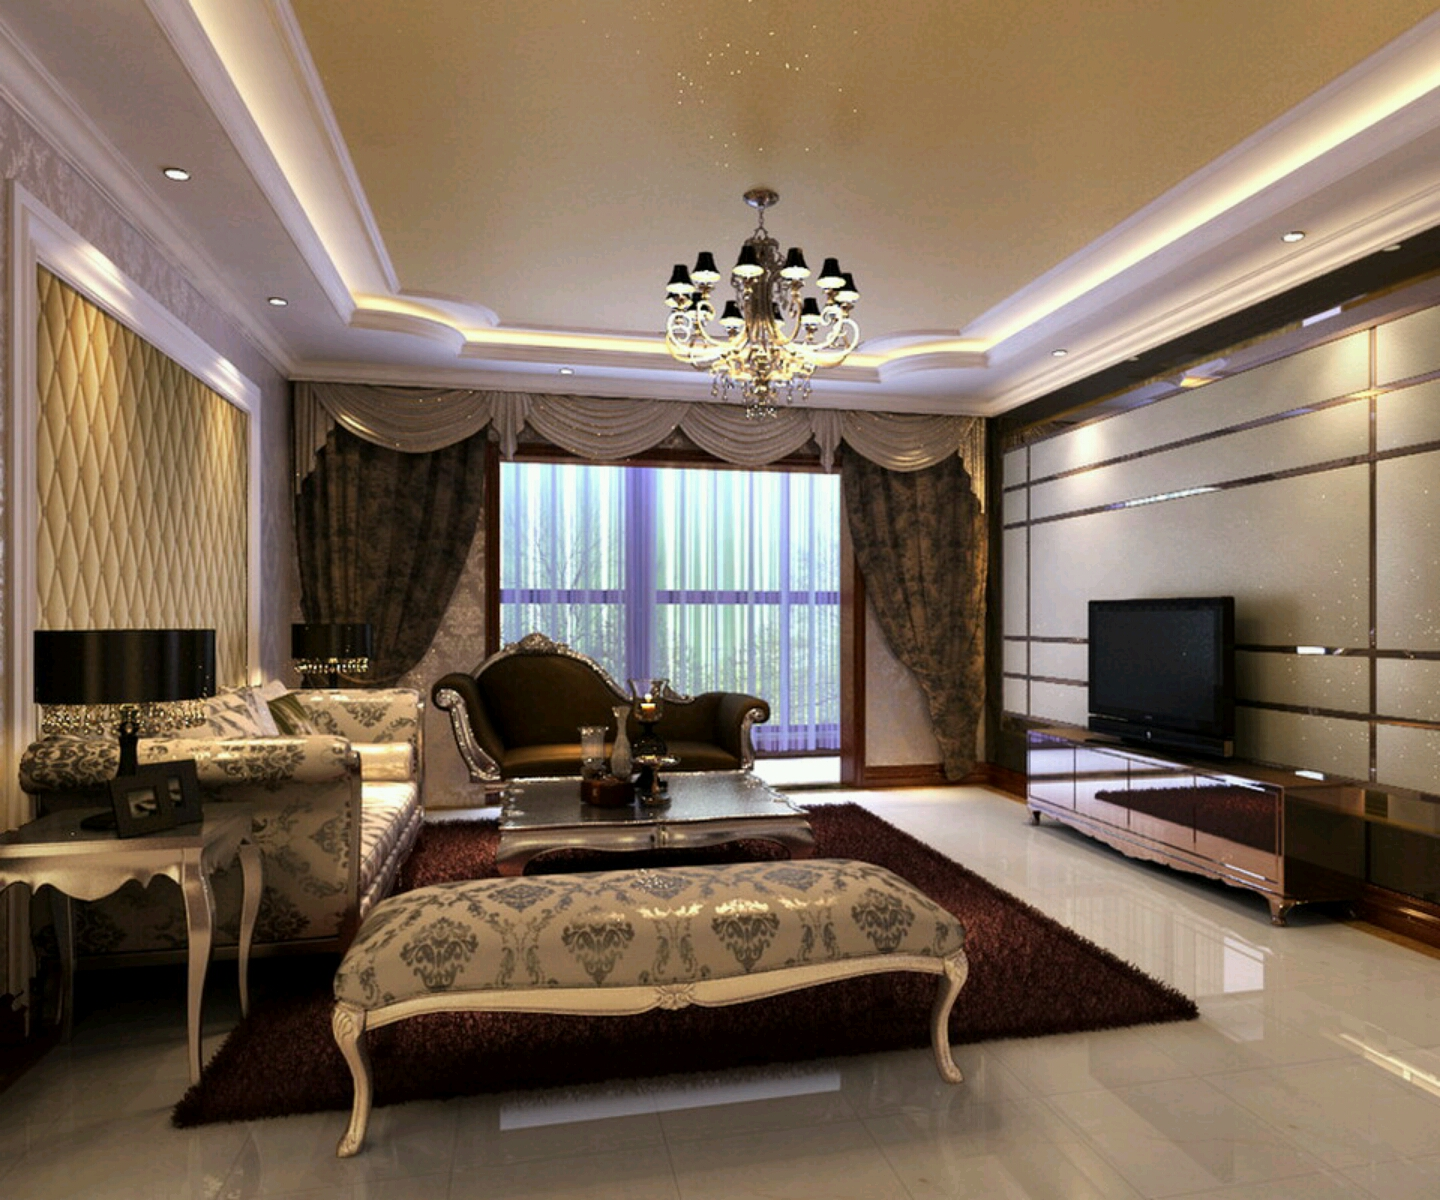 TARA JB'S: Luxury homes interior decoration living room designs ideas.